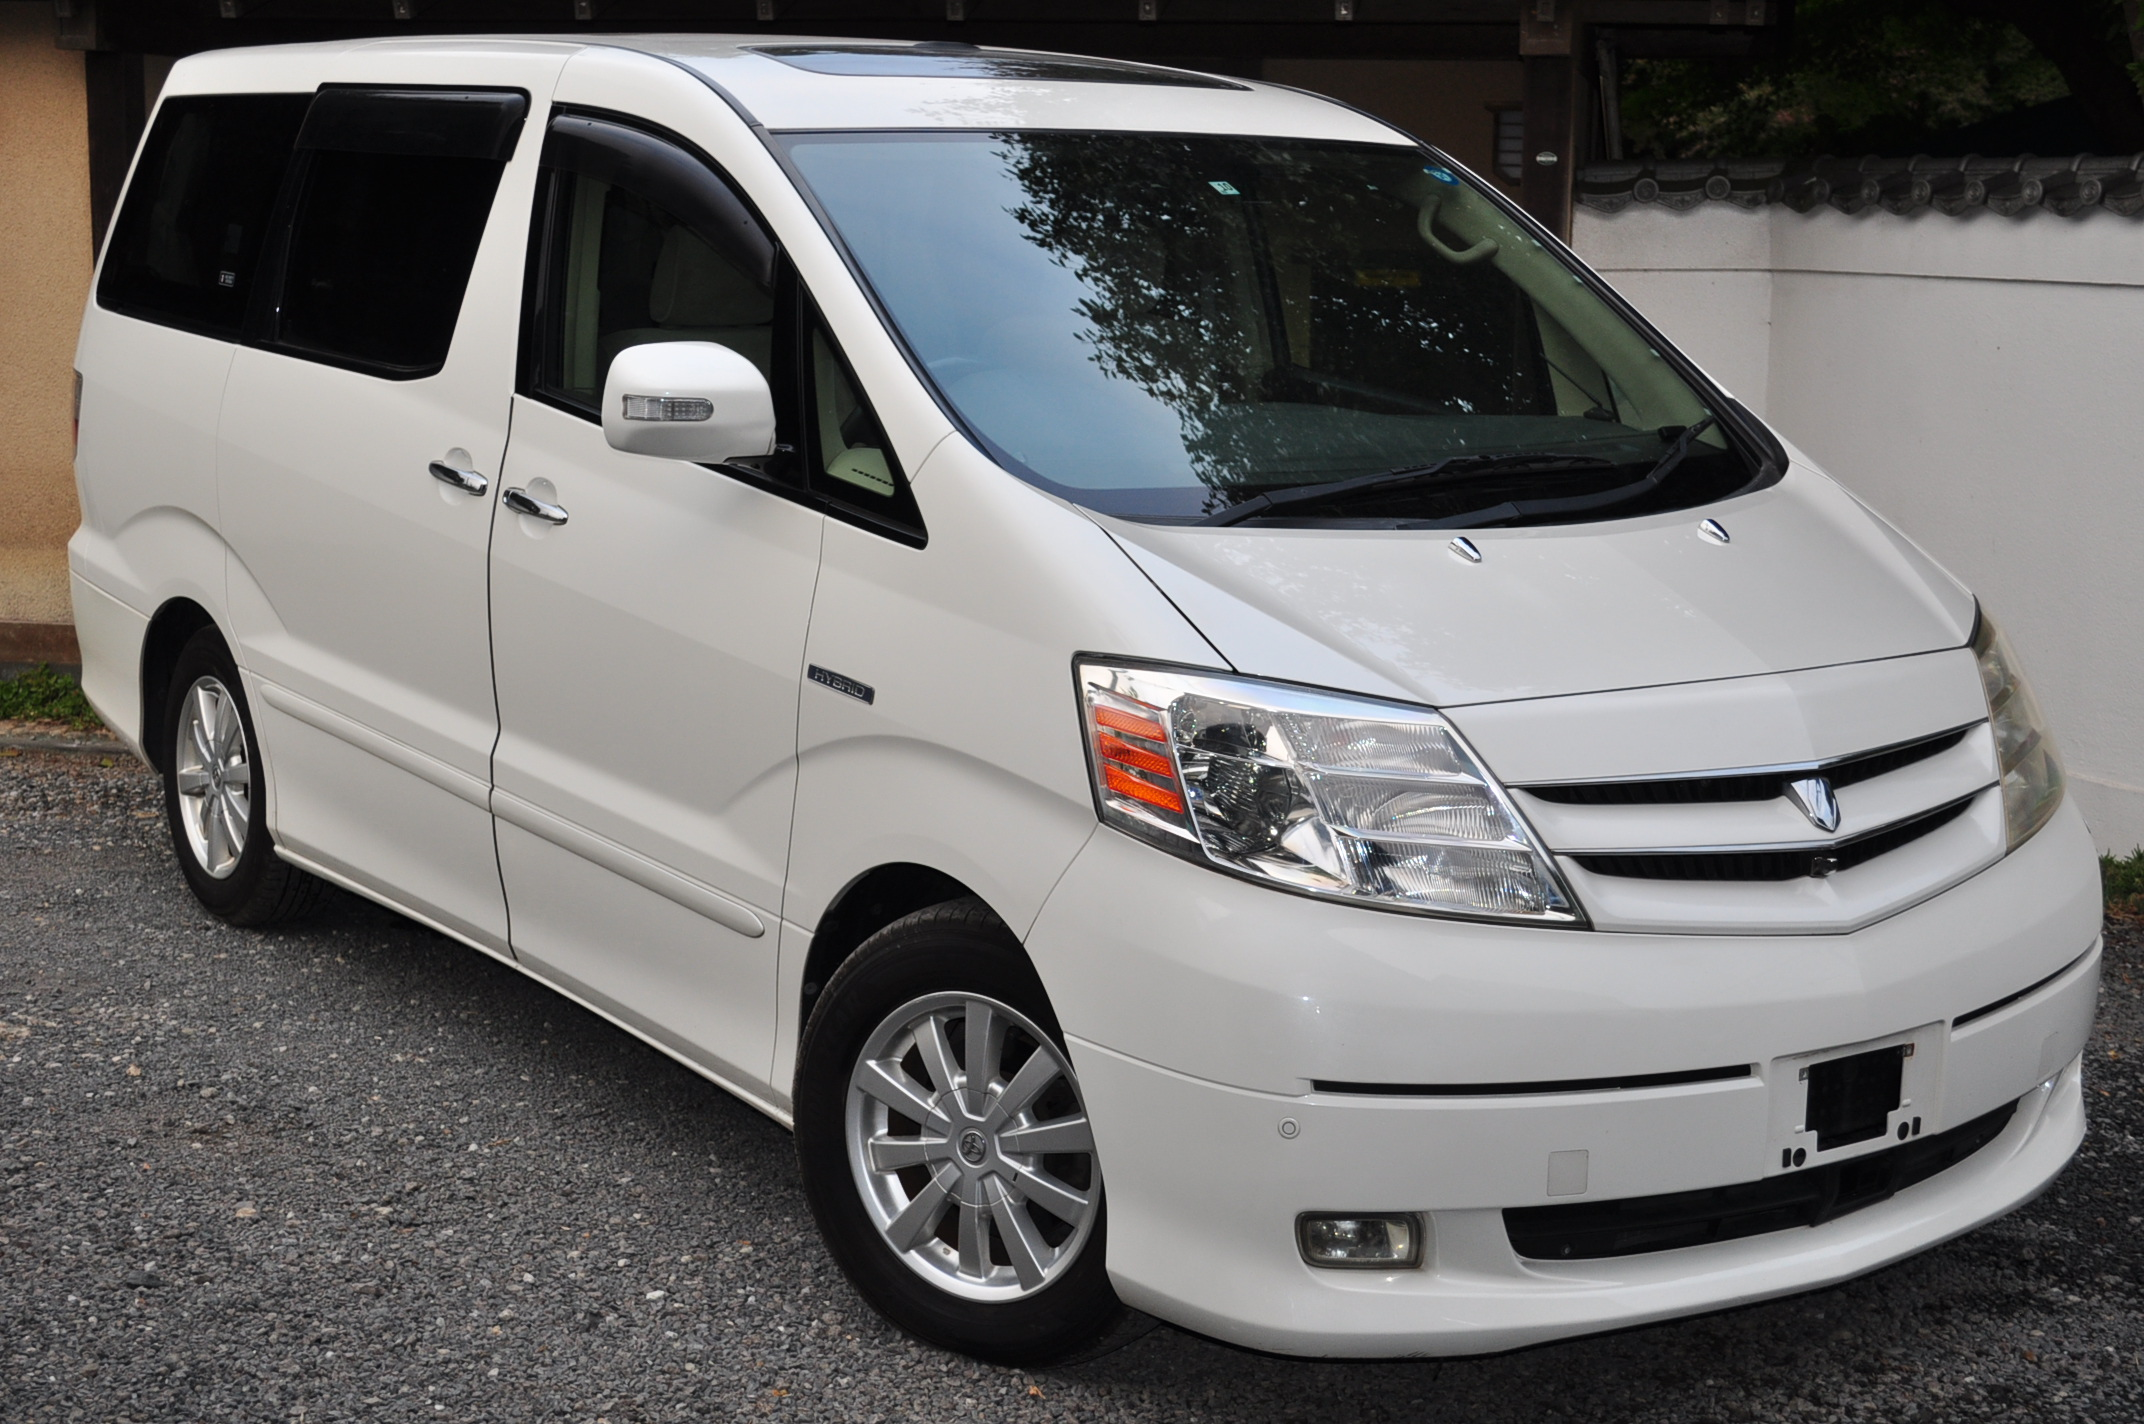 2004 (Jan) Toyota Alphard Hybrid (ATH10) 4WD G Edition Disabled assist seat 2400cc auto